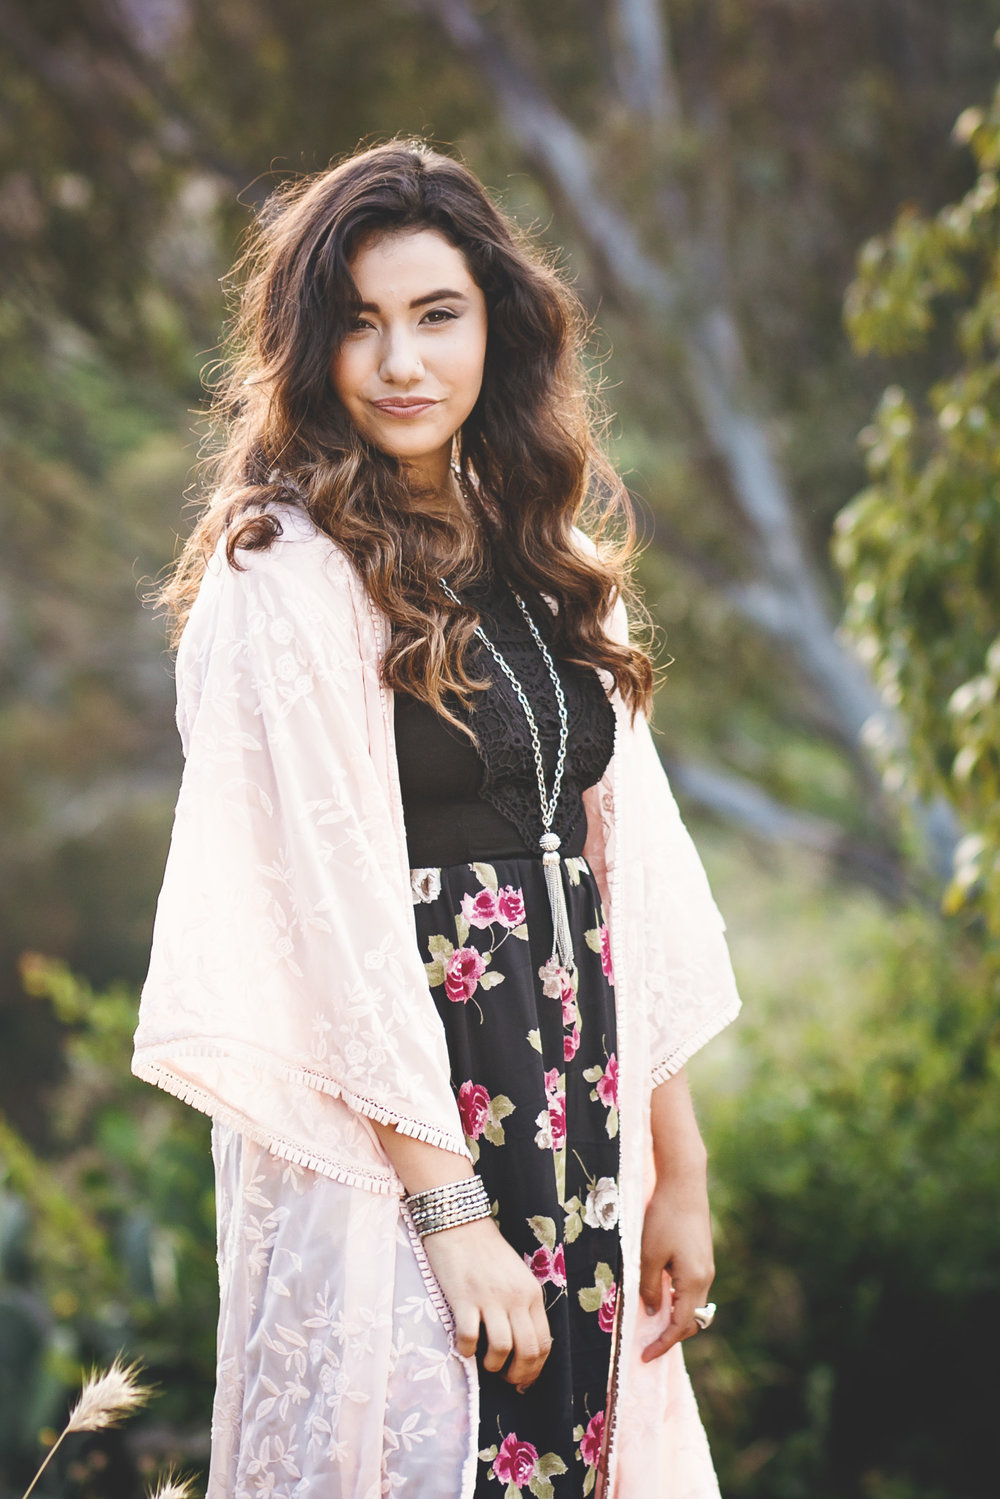 shawna-parks-photo-celeste-escanuela-senior-photos-san-diego-017.jpg